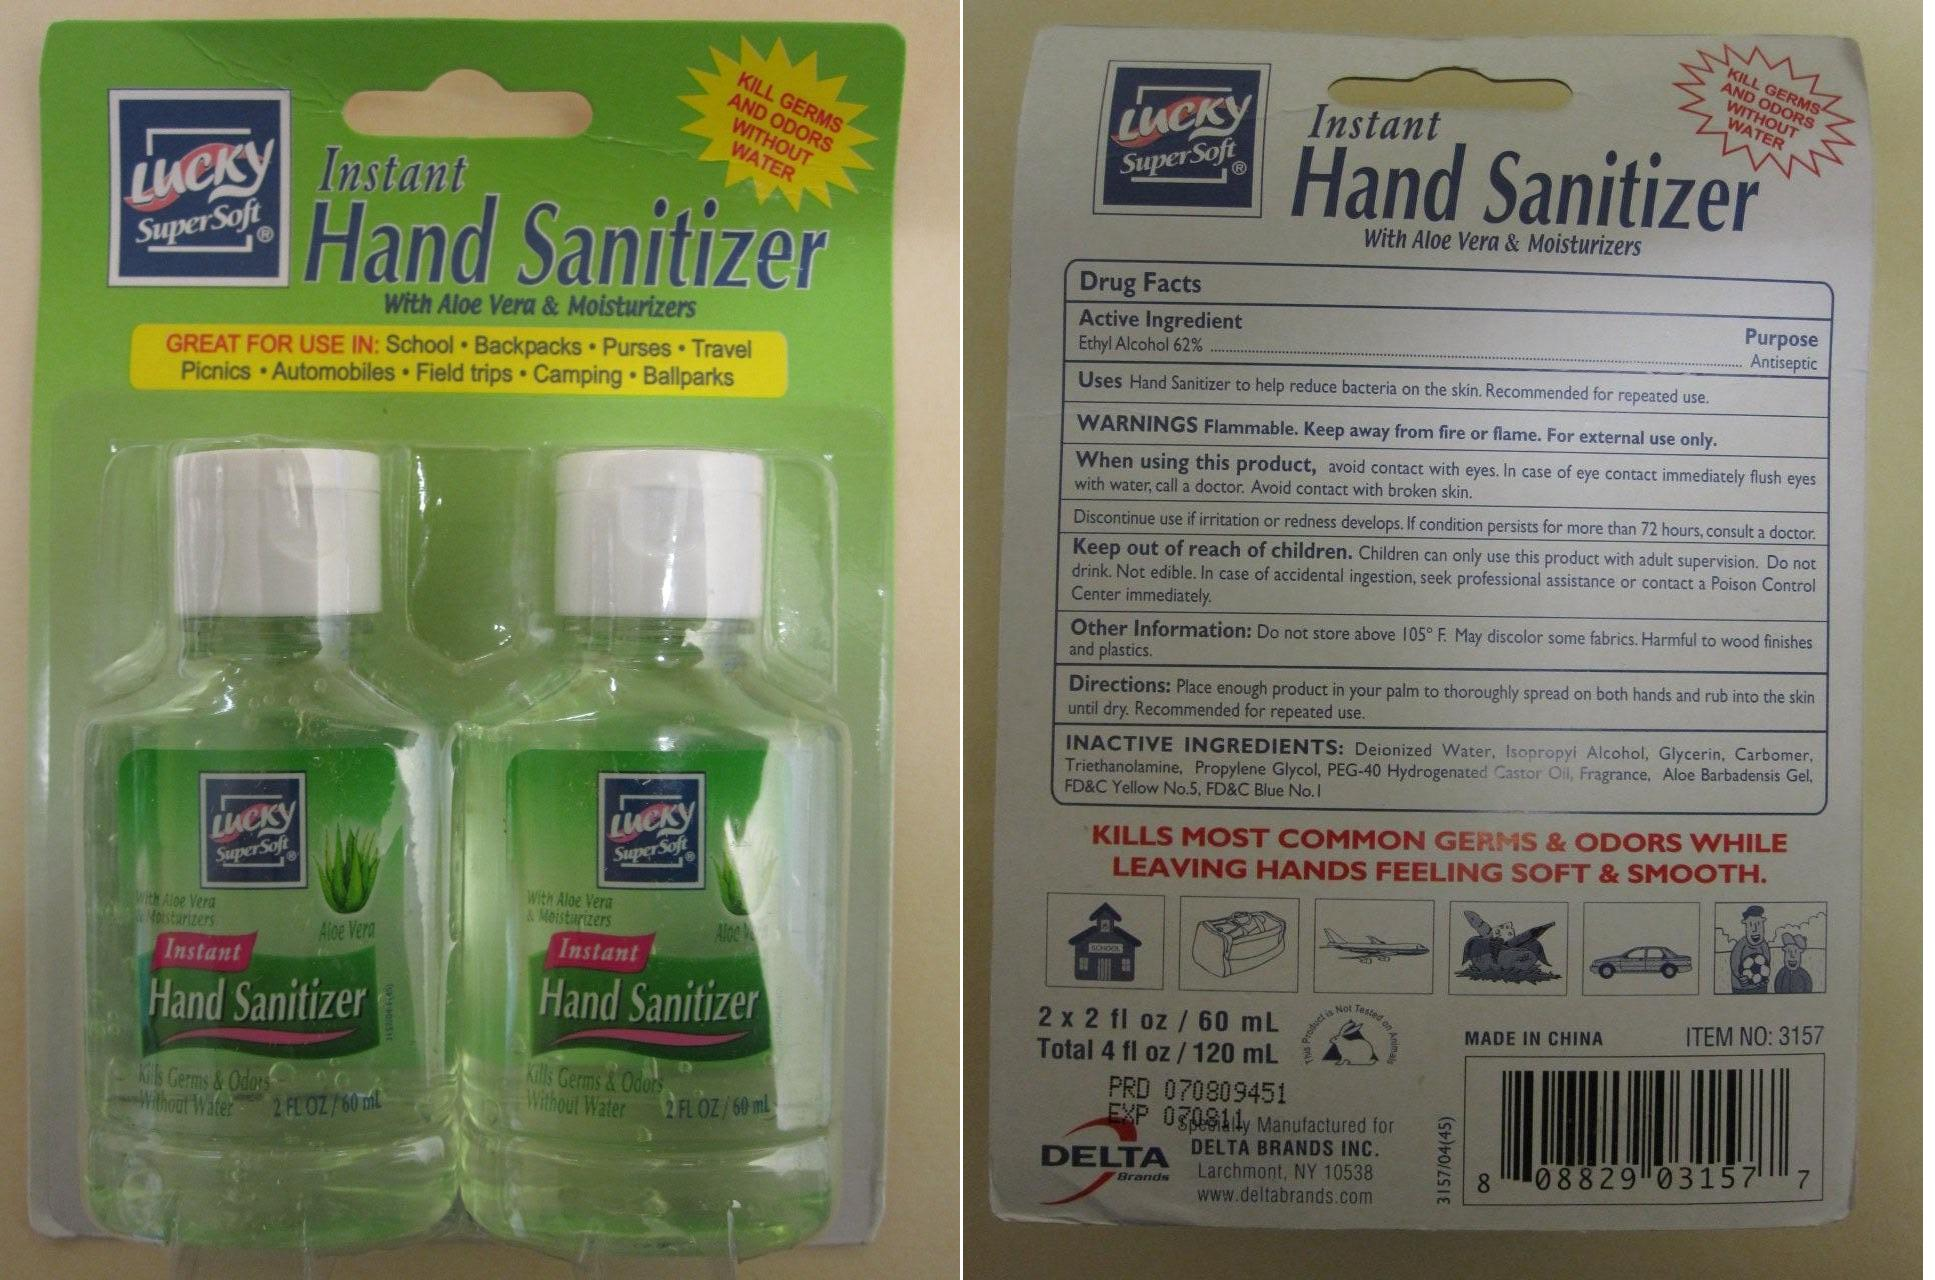 Lucky Instant Hand Cleanser With Aloe Vera (Ethyl Alcohol) Liquid [Delta Brands Inc]